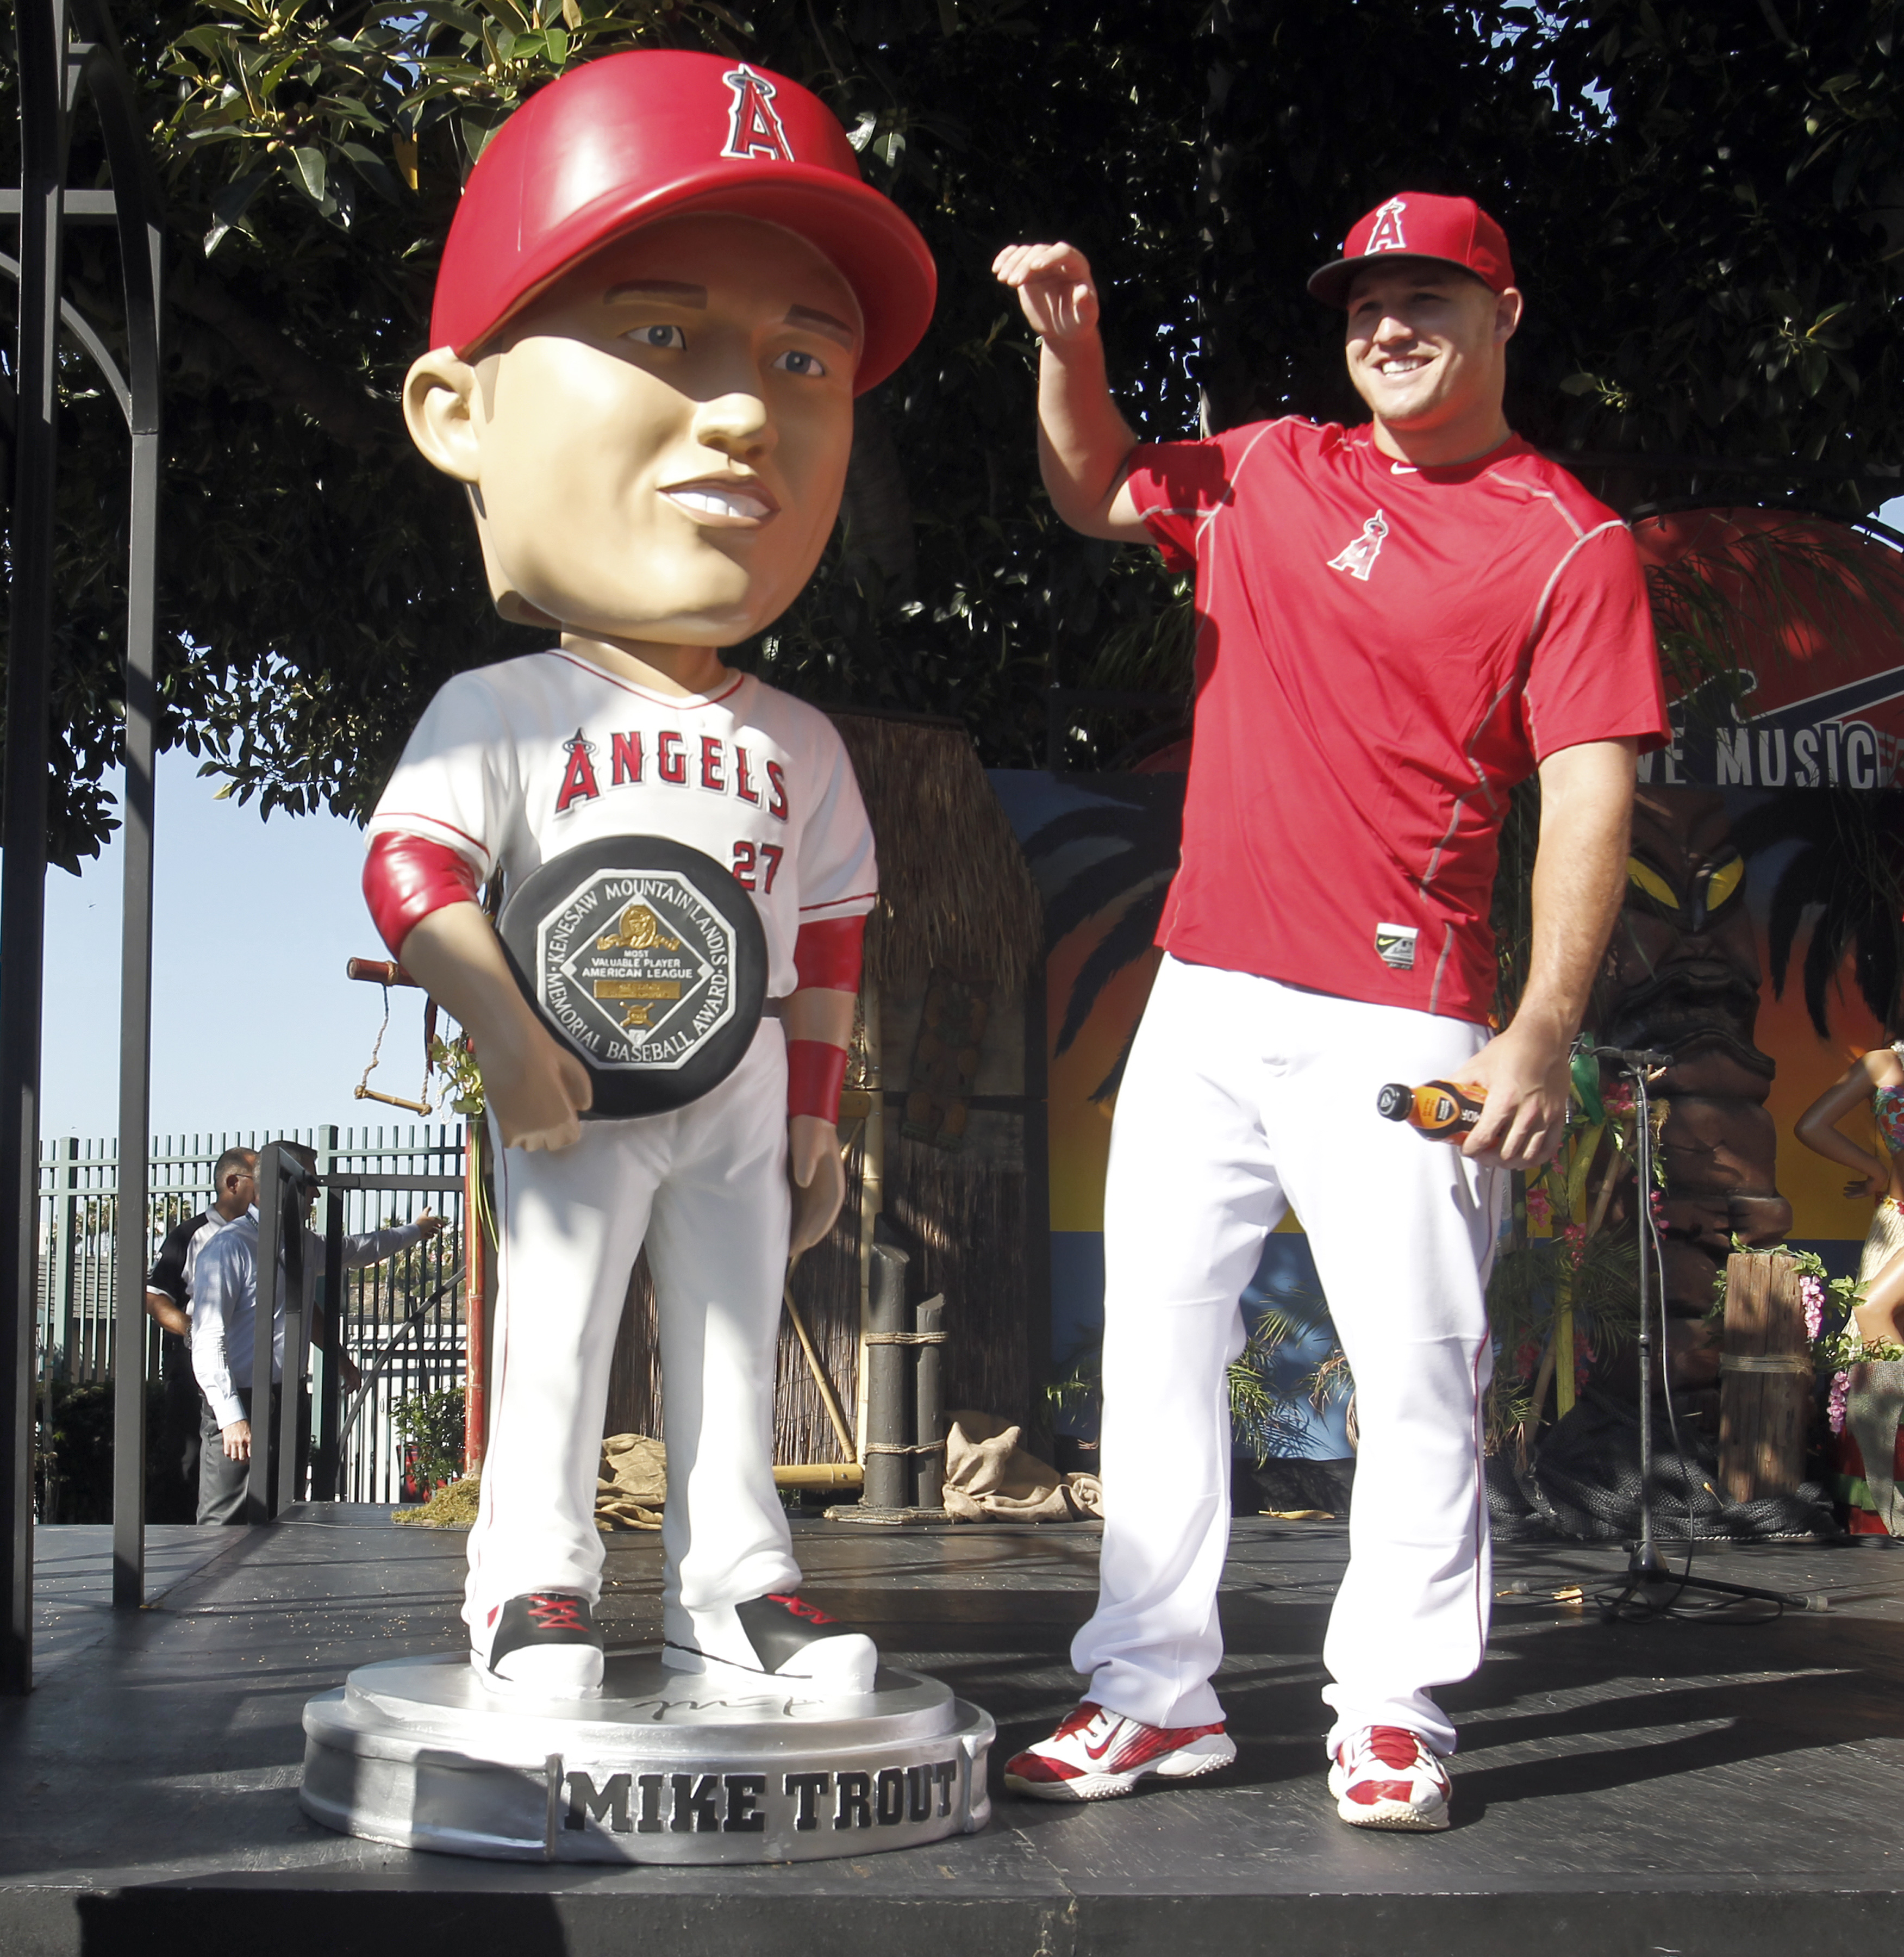 Los Angeles Angels' Mike Trout reacts after unveiling an life-sized bobblehead doll before a baseball game against the Texas Rangers in Anaheim, Calif., Friday, July 24, 2015. (AP Photo/Alex Gallardo)